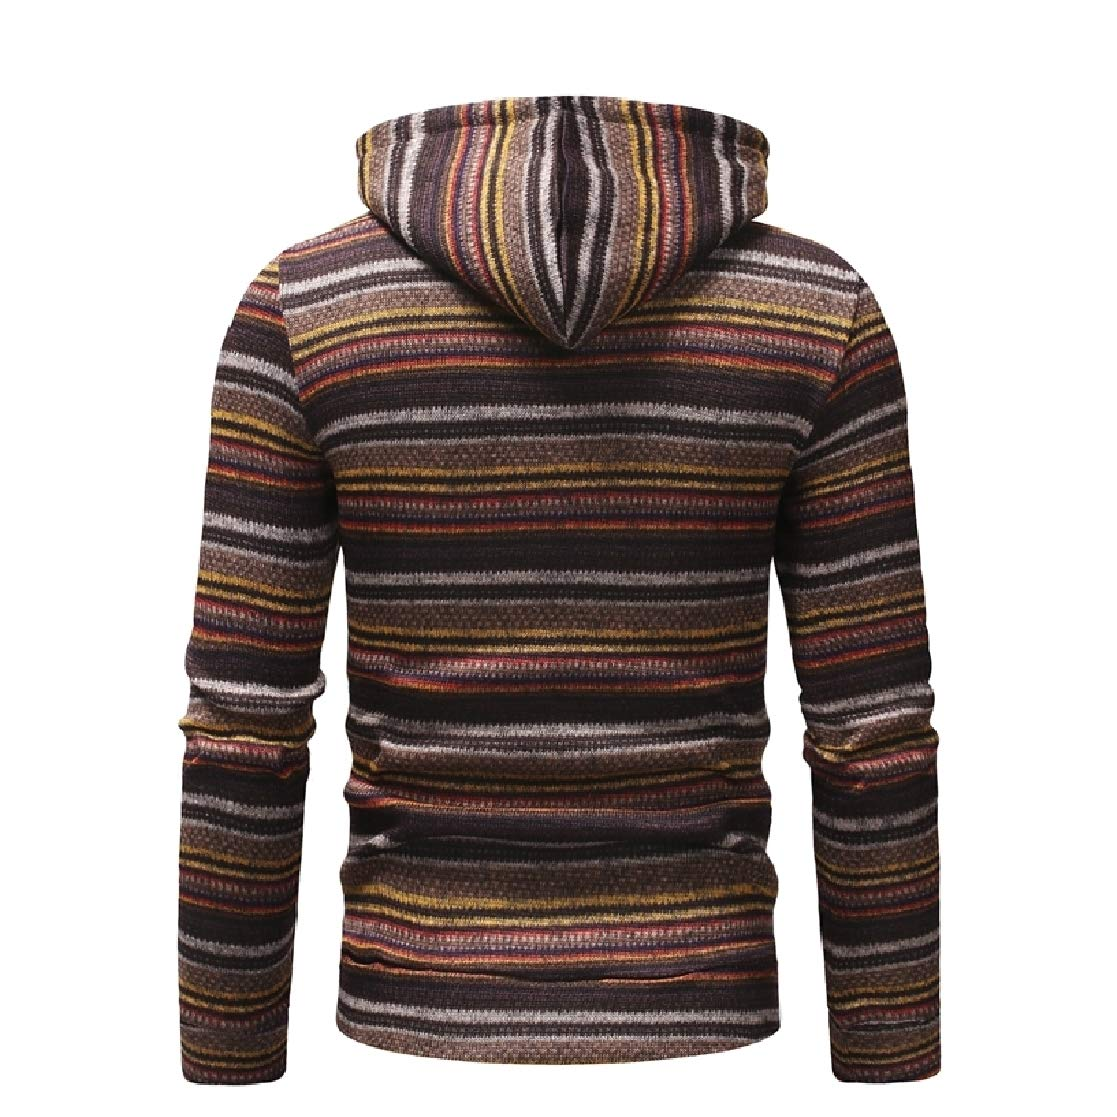 YUNY Men Spell Color Basic Printed Striped Leisure Sweatshirt Coffee S